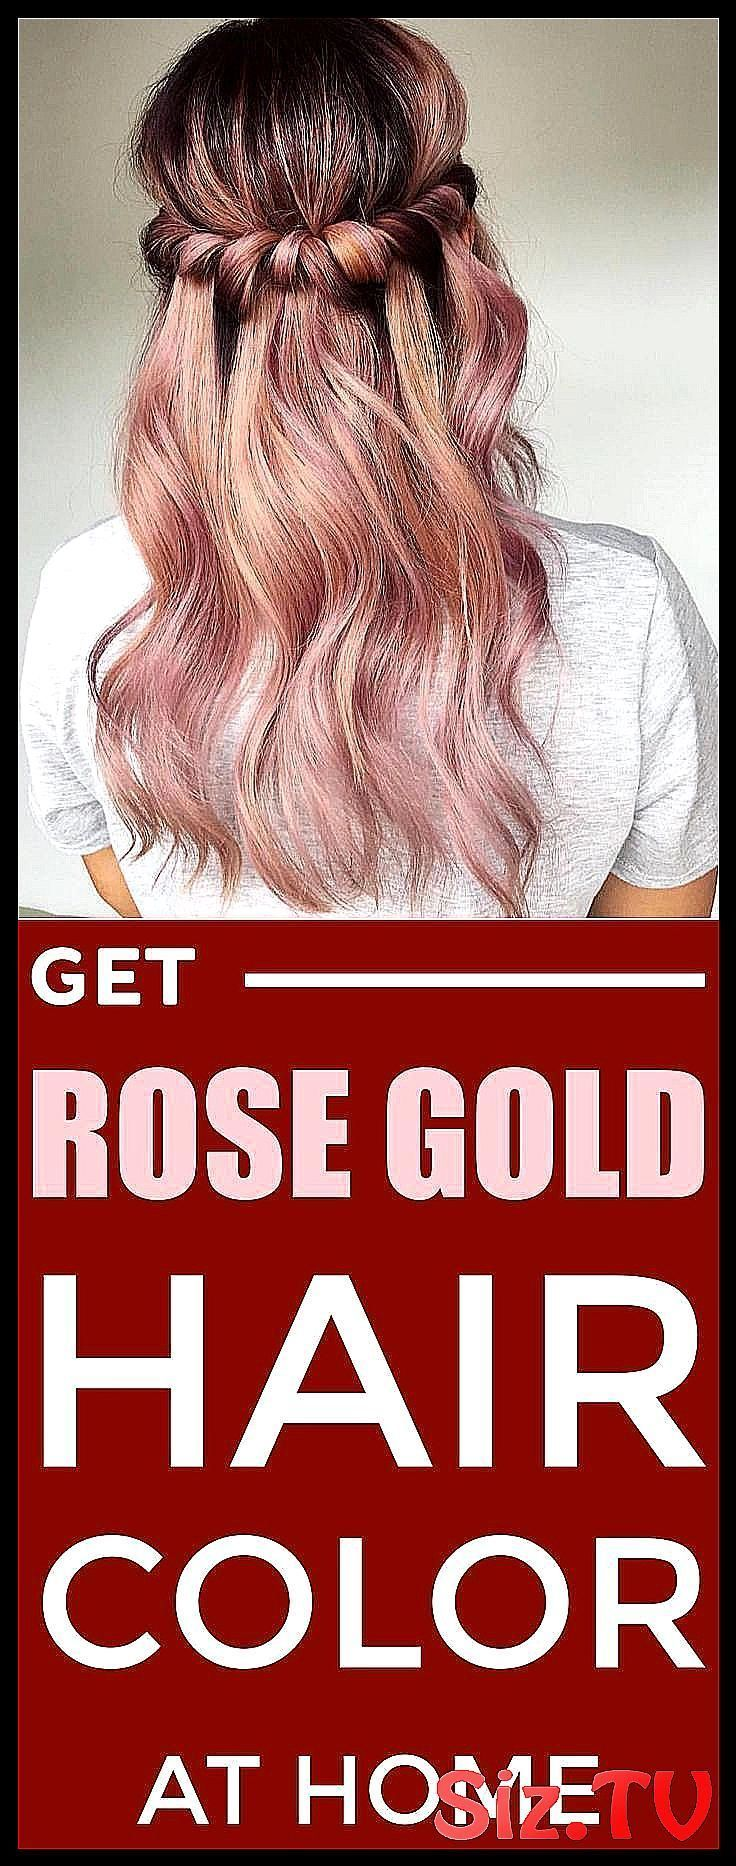 How To Get Rose Gold Hair Color At Home With Natur Color Diy Gold Hair Home Hair Color Rose Gold Gold Hair Colors Rose Gold Hair